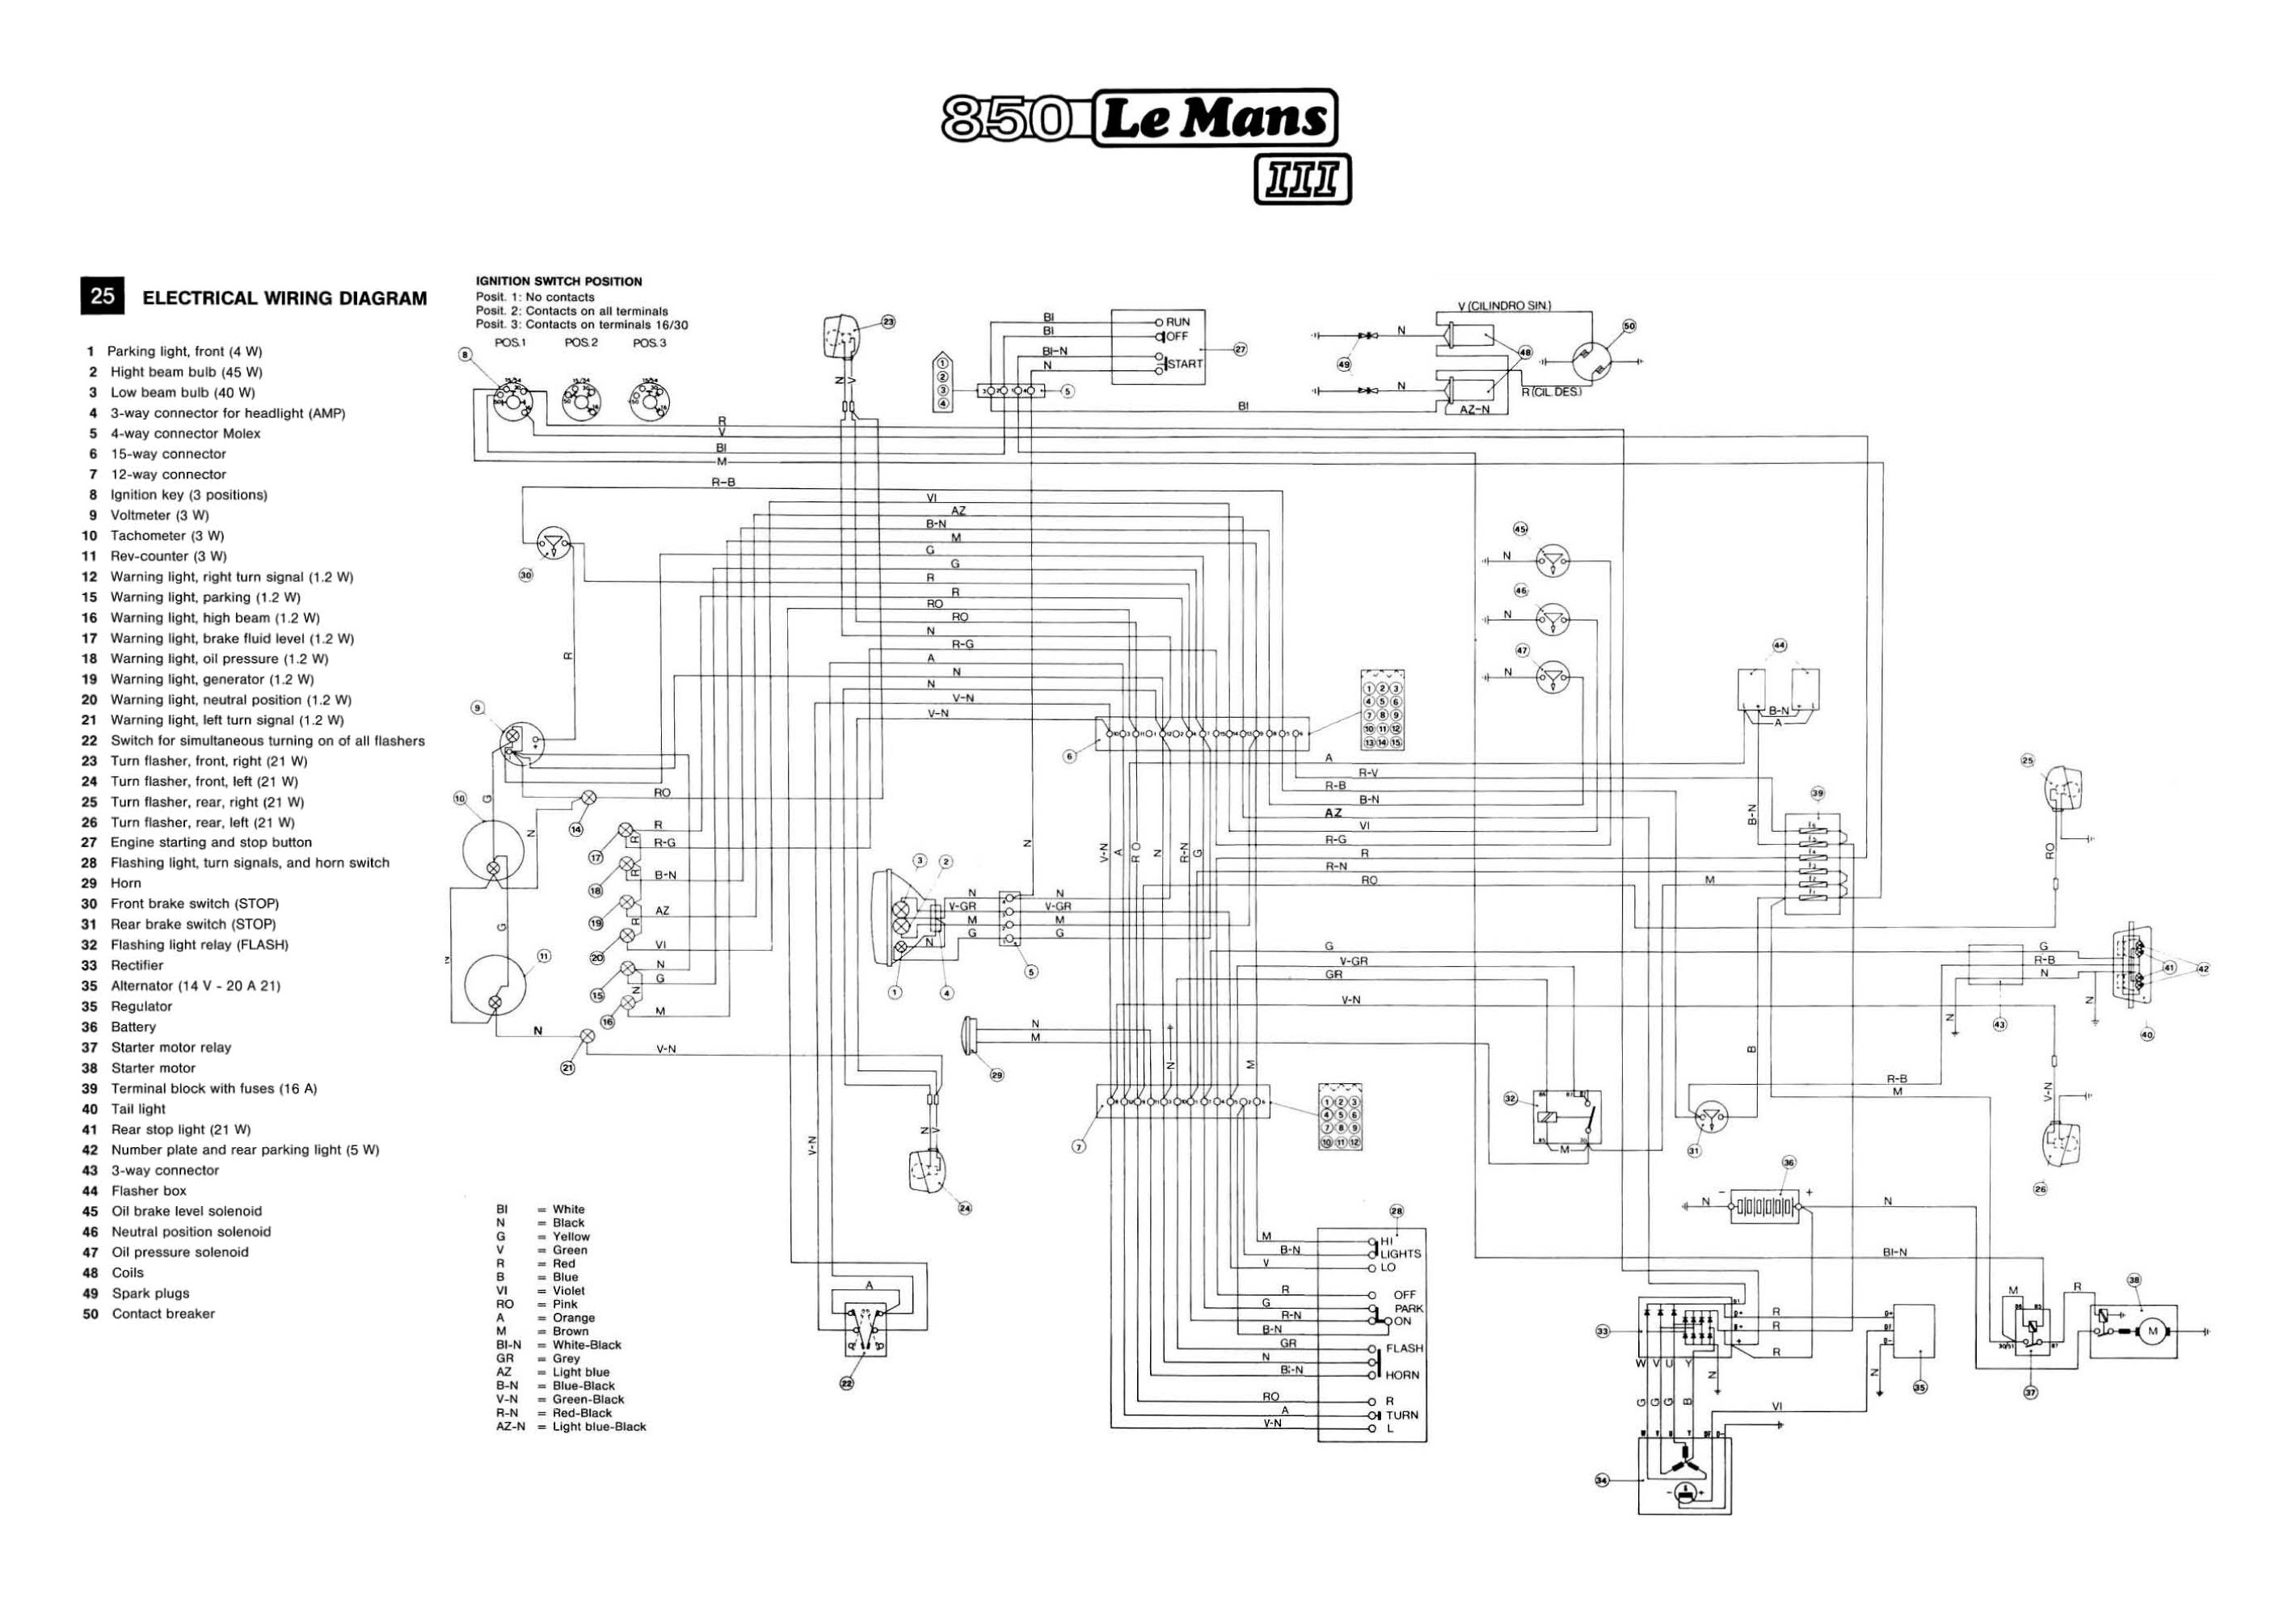 gentex 261 wiring diagram